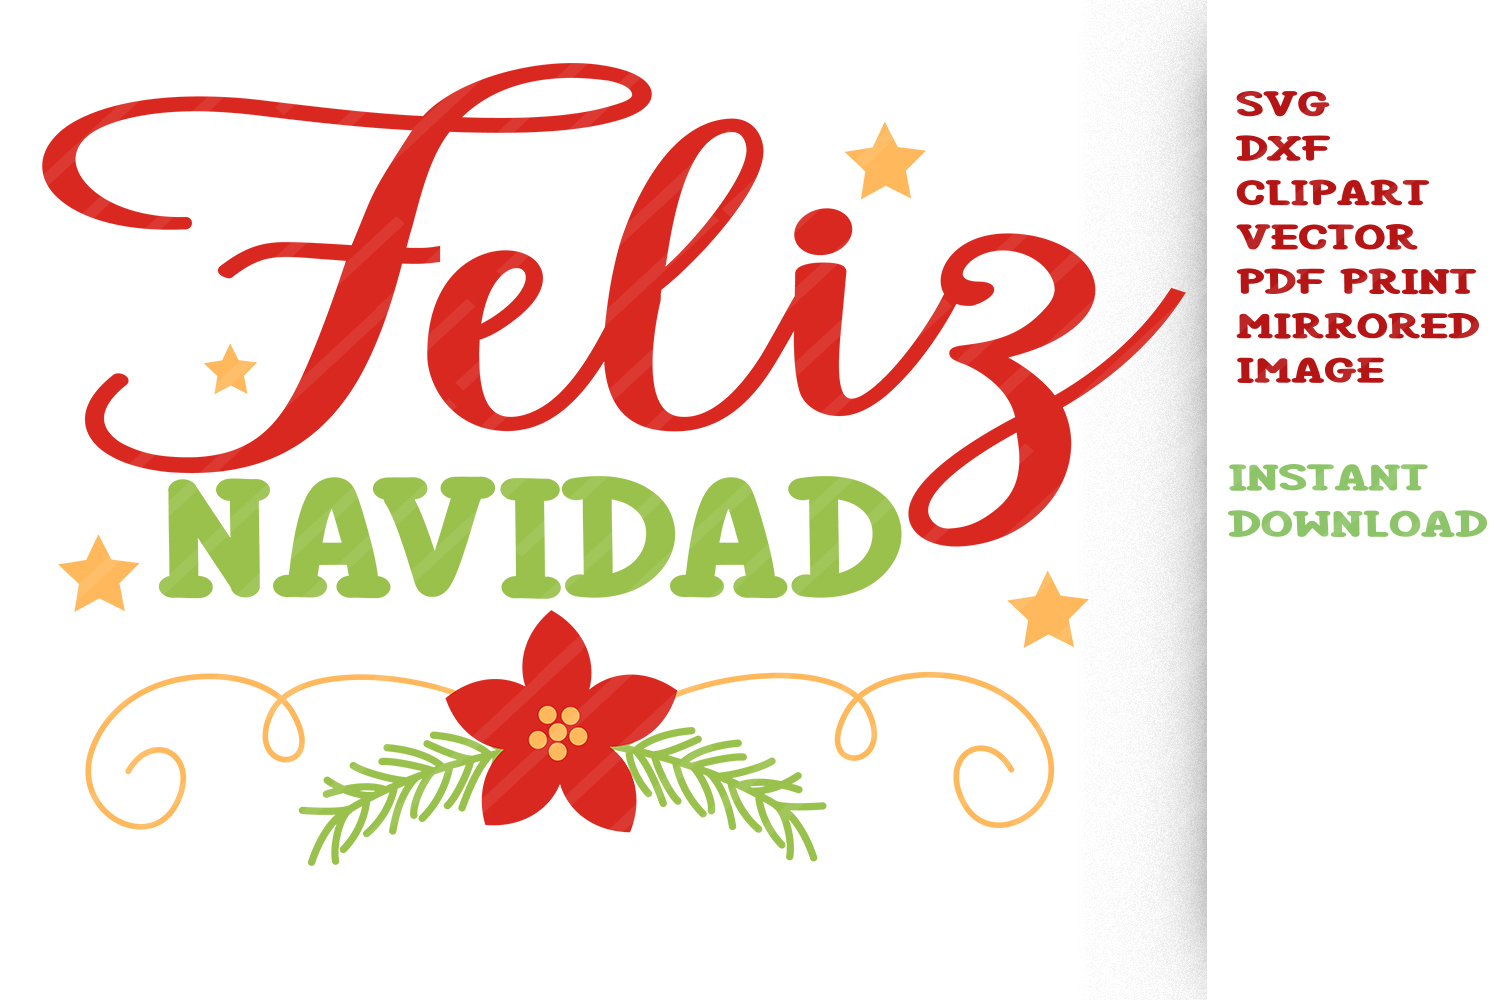 Feliz Navidad SVG Cut files Clipart Vector Christmas svg.